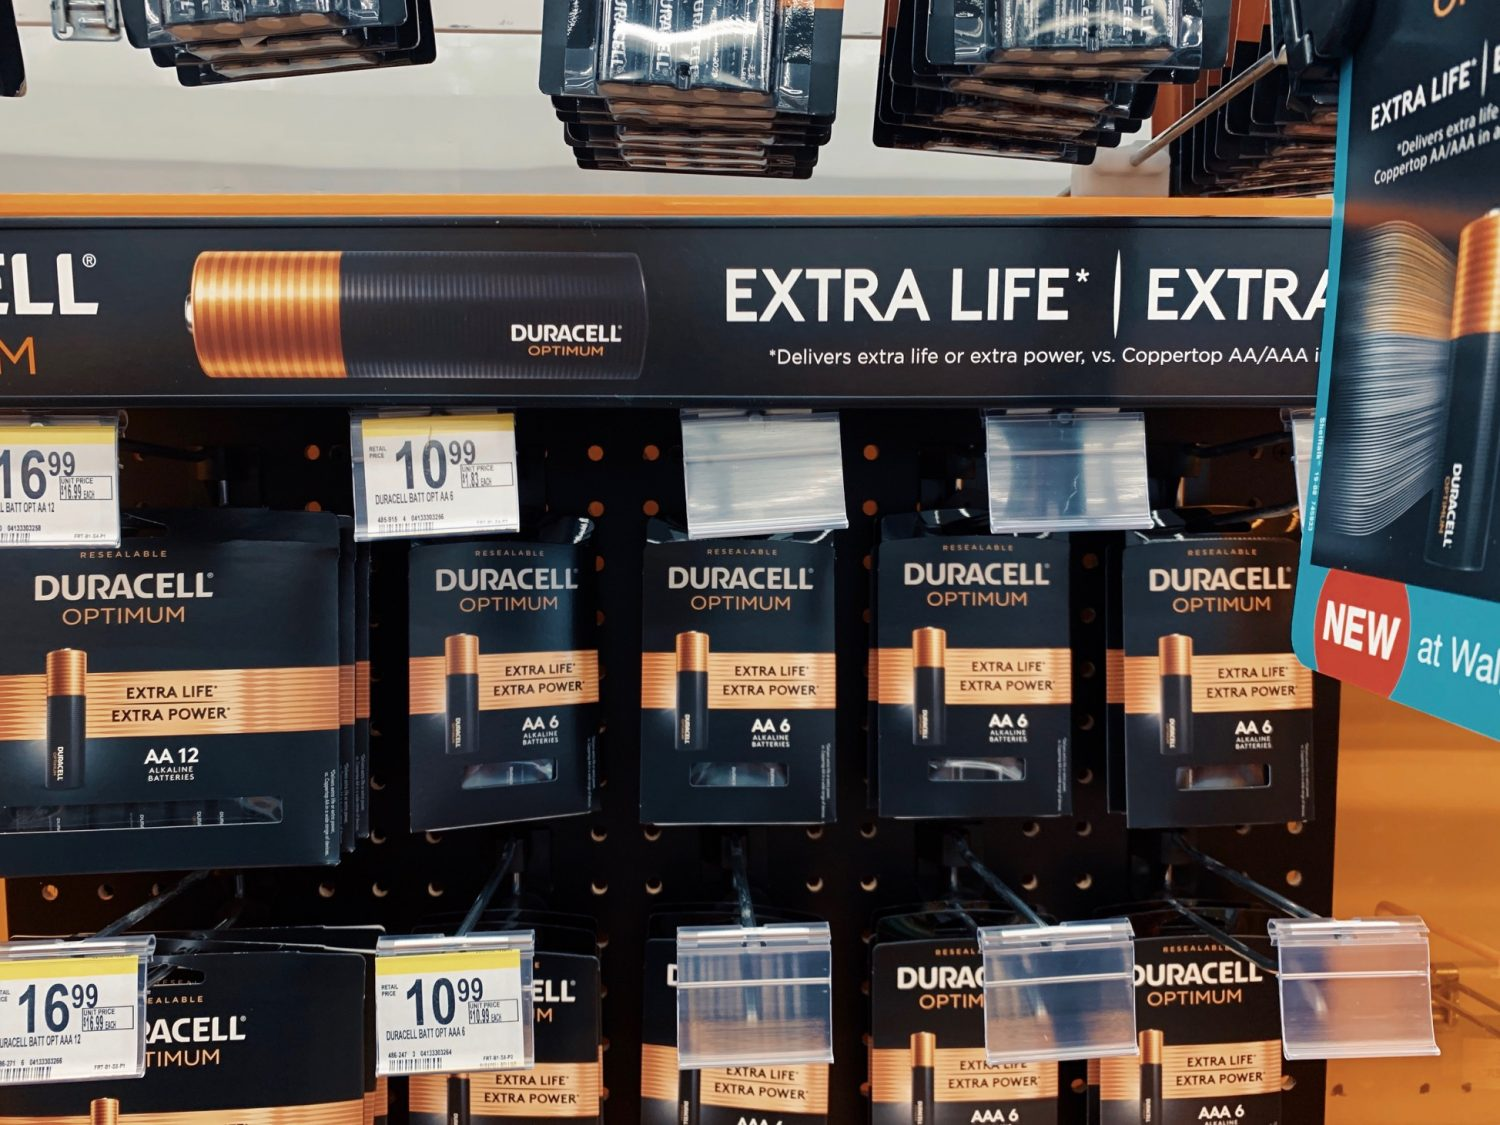 Duracell Optimum Batteries at Walgreen's